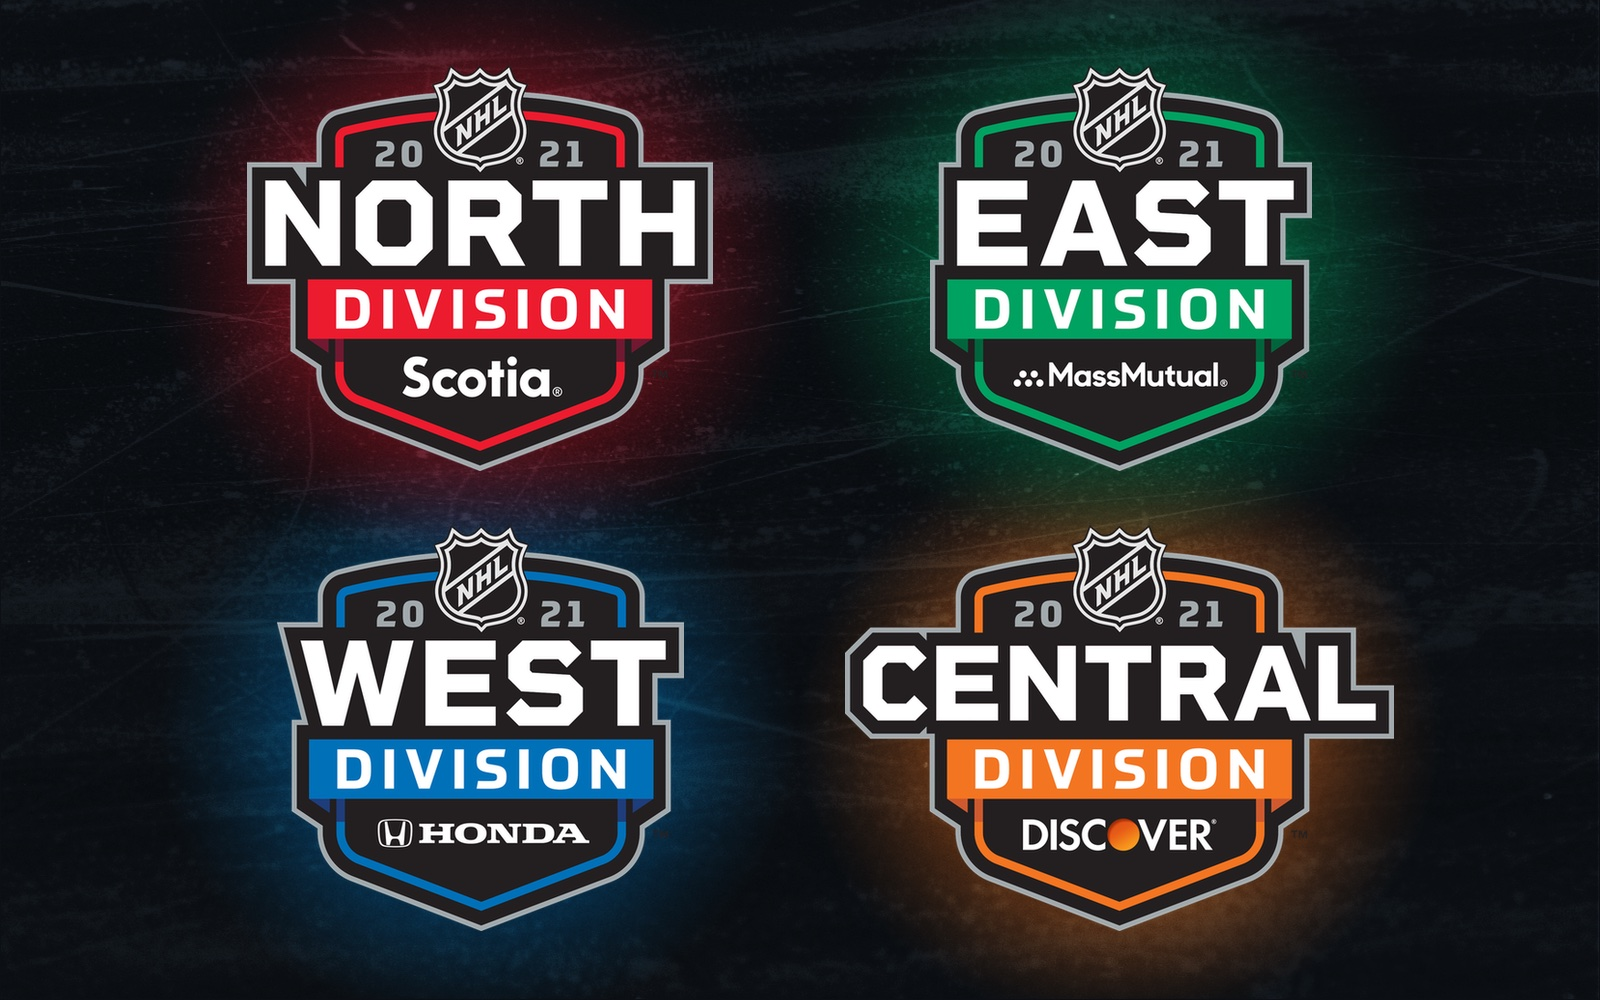 NHL reveals sponsored division logos for 2021